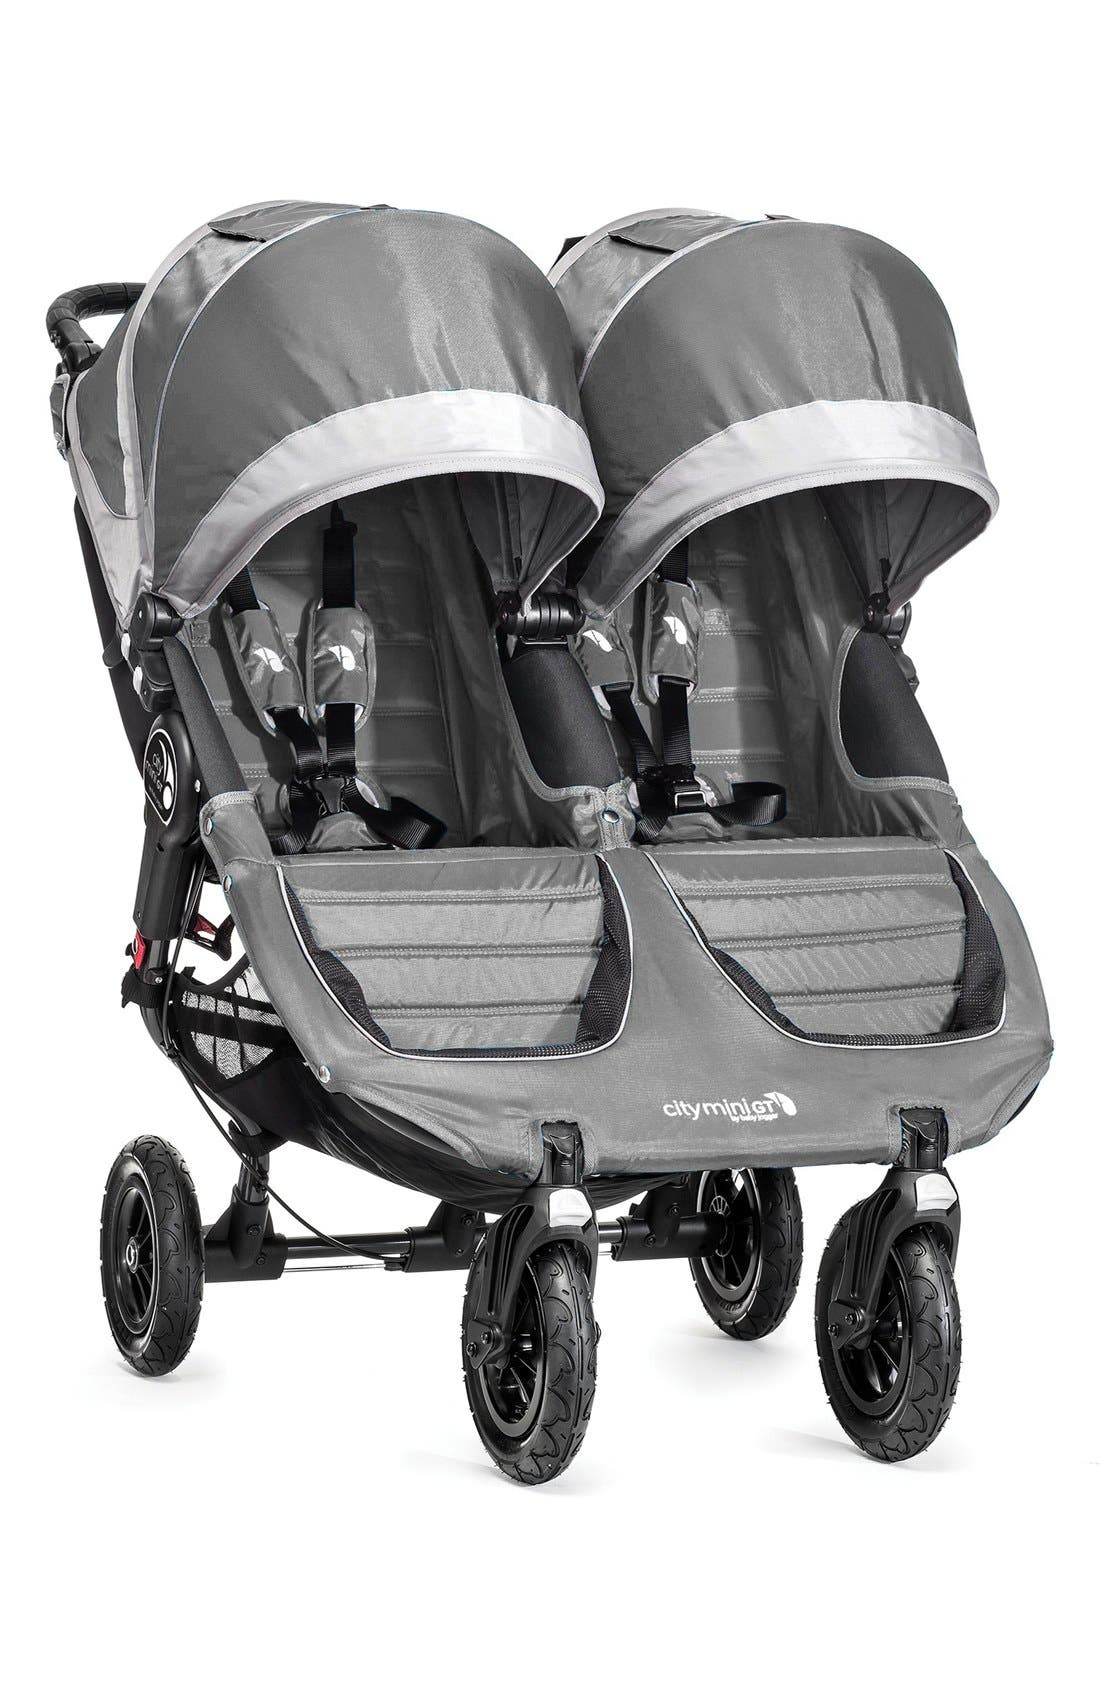 City Mini<sup>®</sup> GT Double Stroller,                             Main thumbnail 1, color,                             021